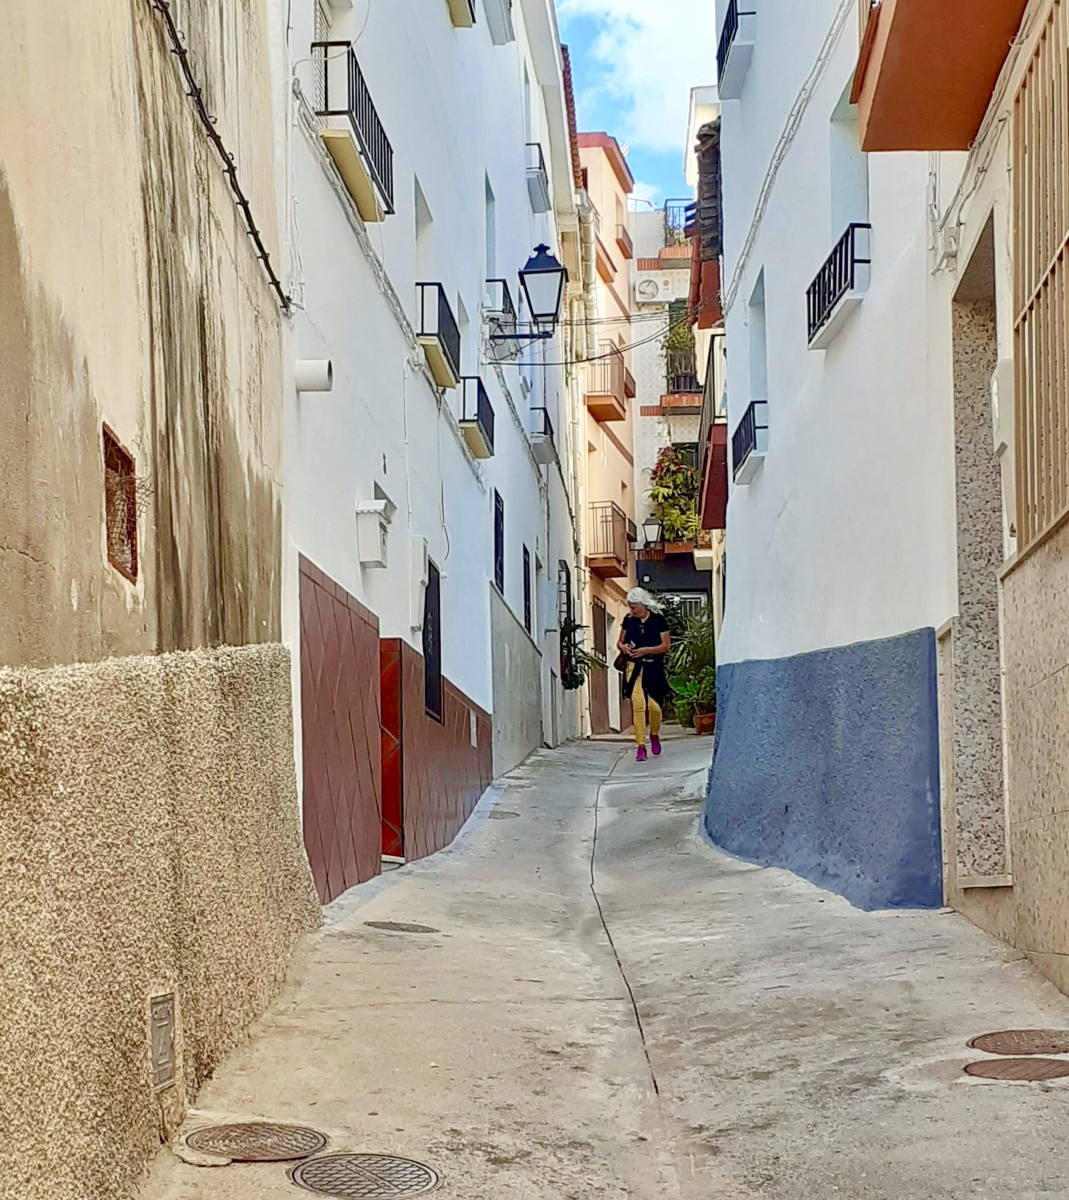 Enjoying a walk along the narrow picturesque streets of Ítrabo.